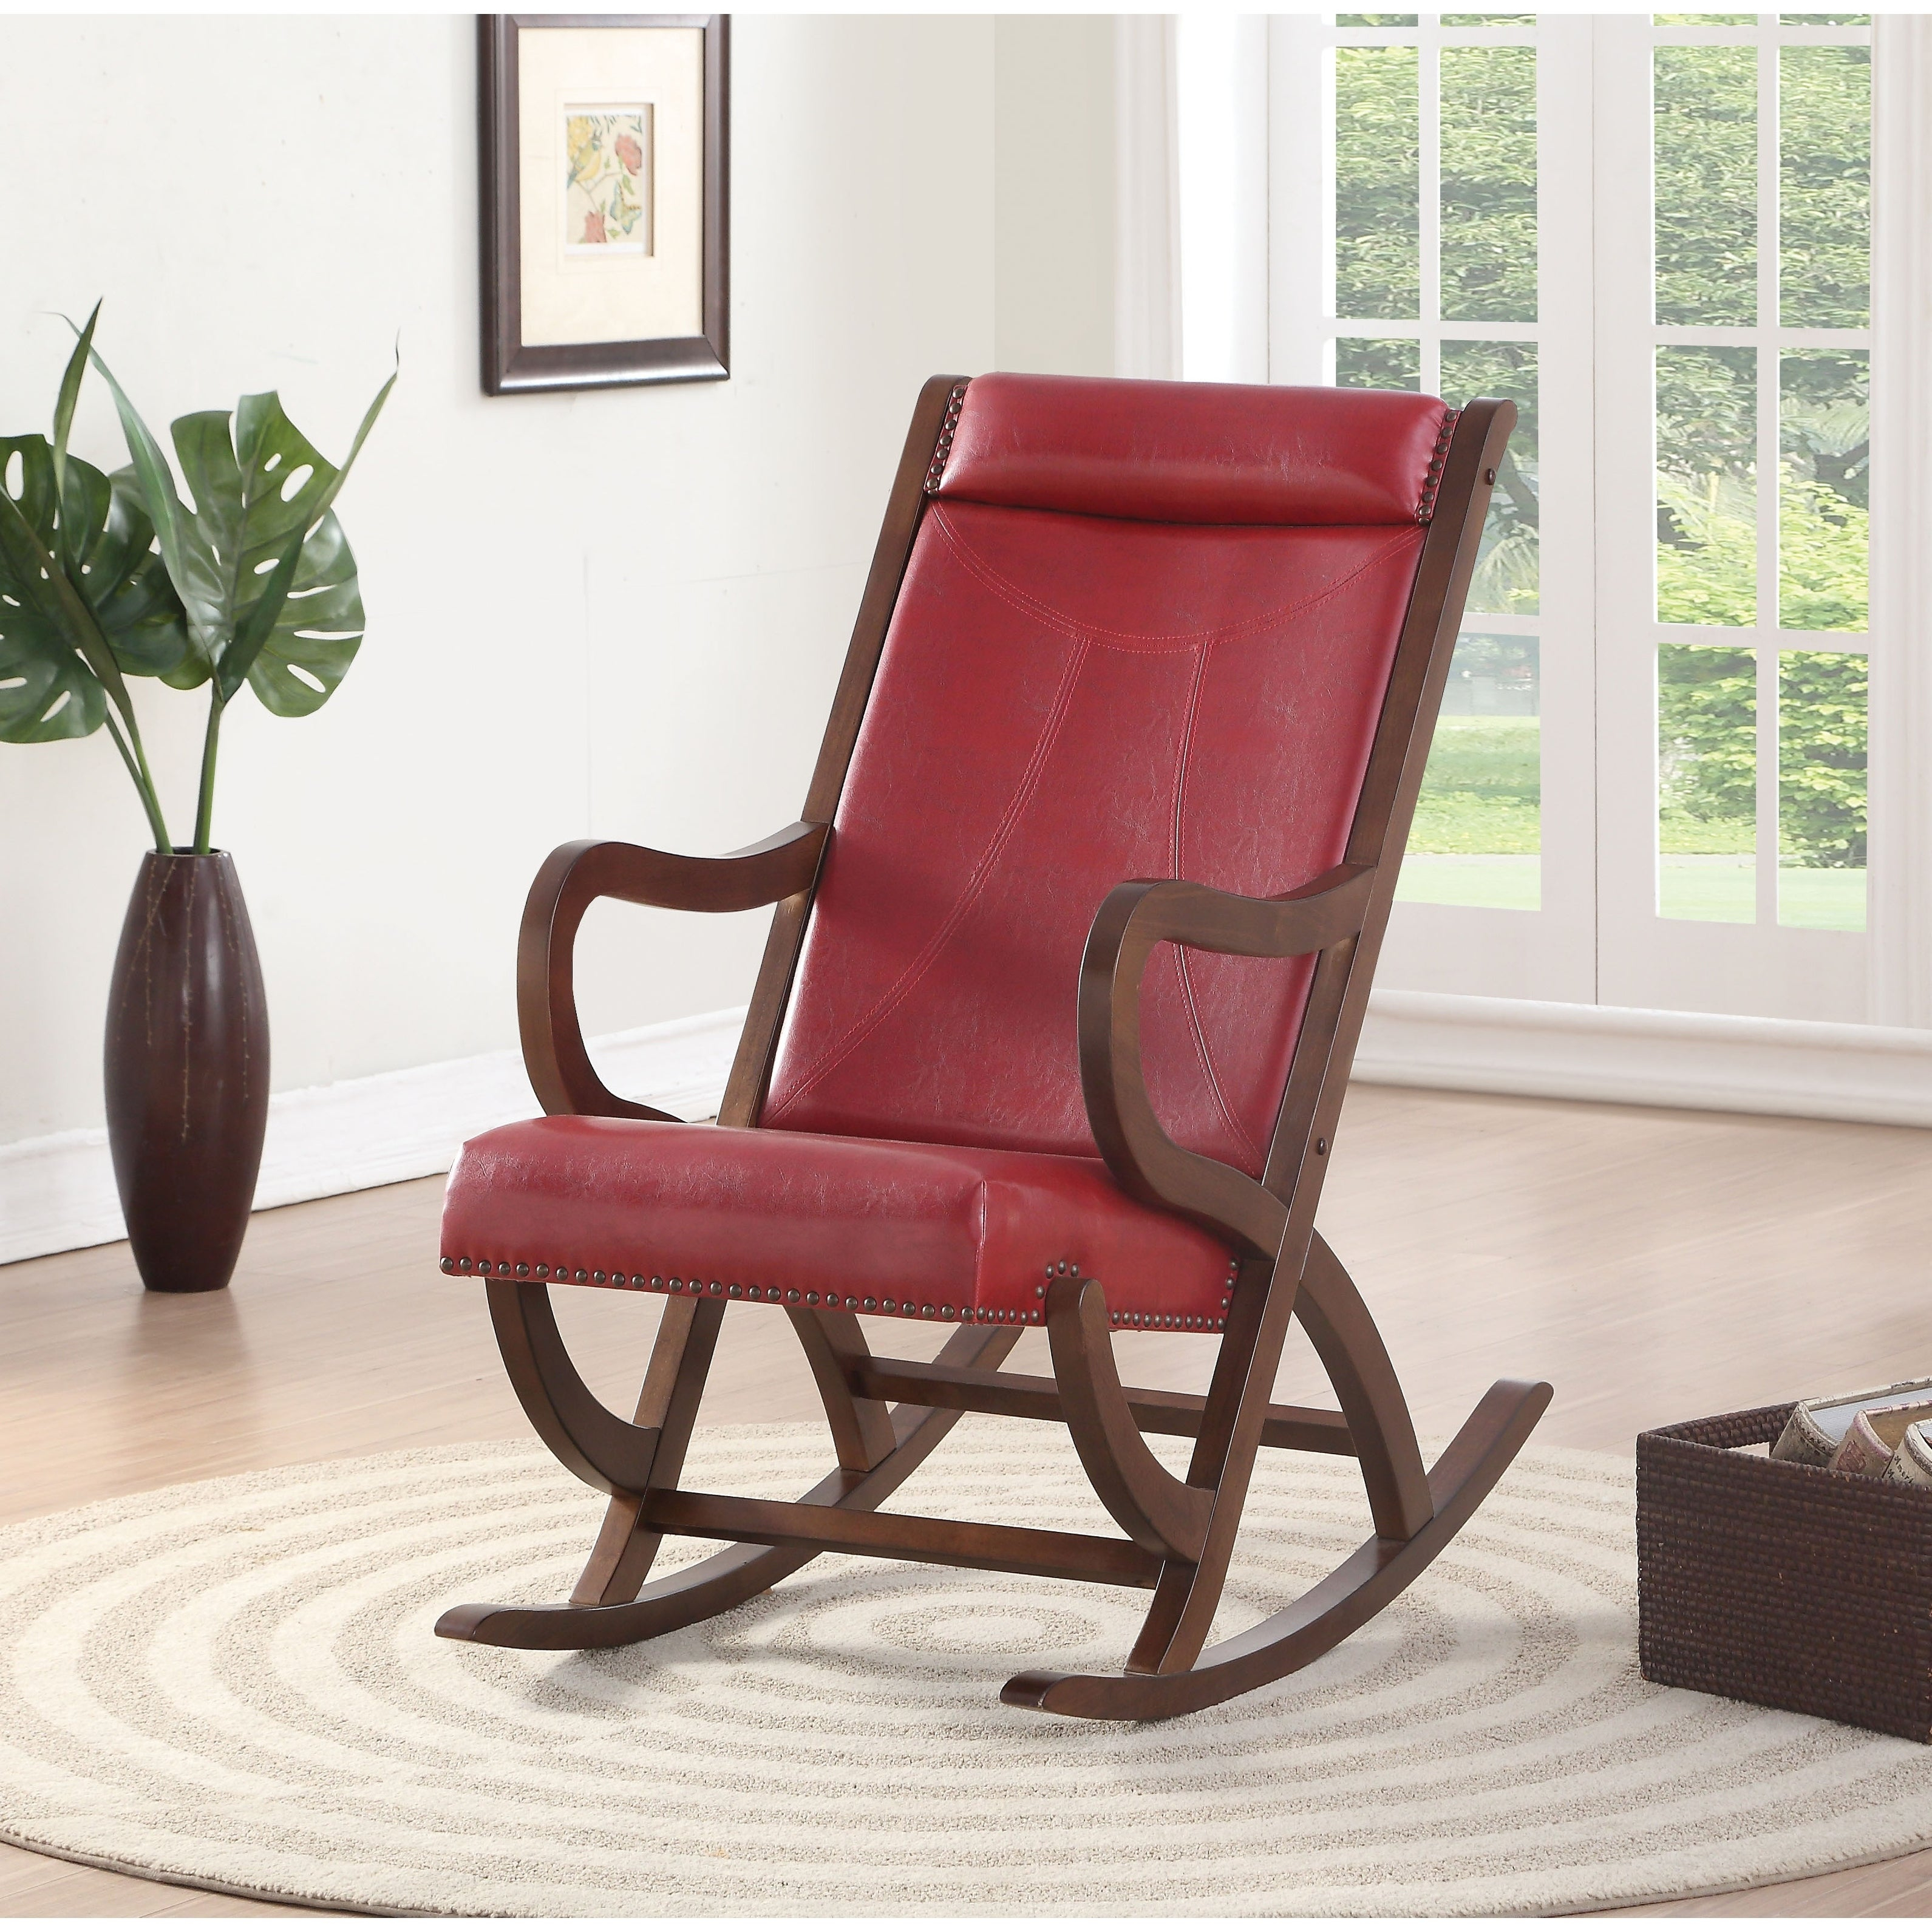 Popular Photo of Faux Leather Upholstered Wooden Rocking Chairs With Looped Arms, Brown